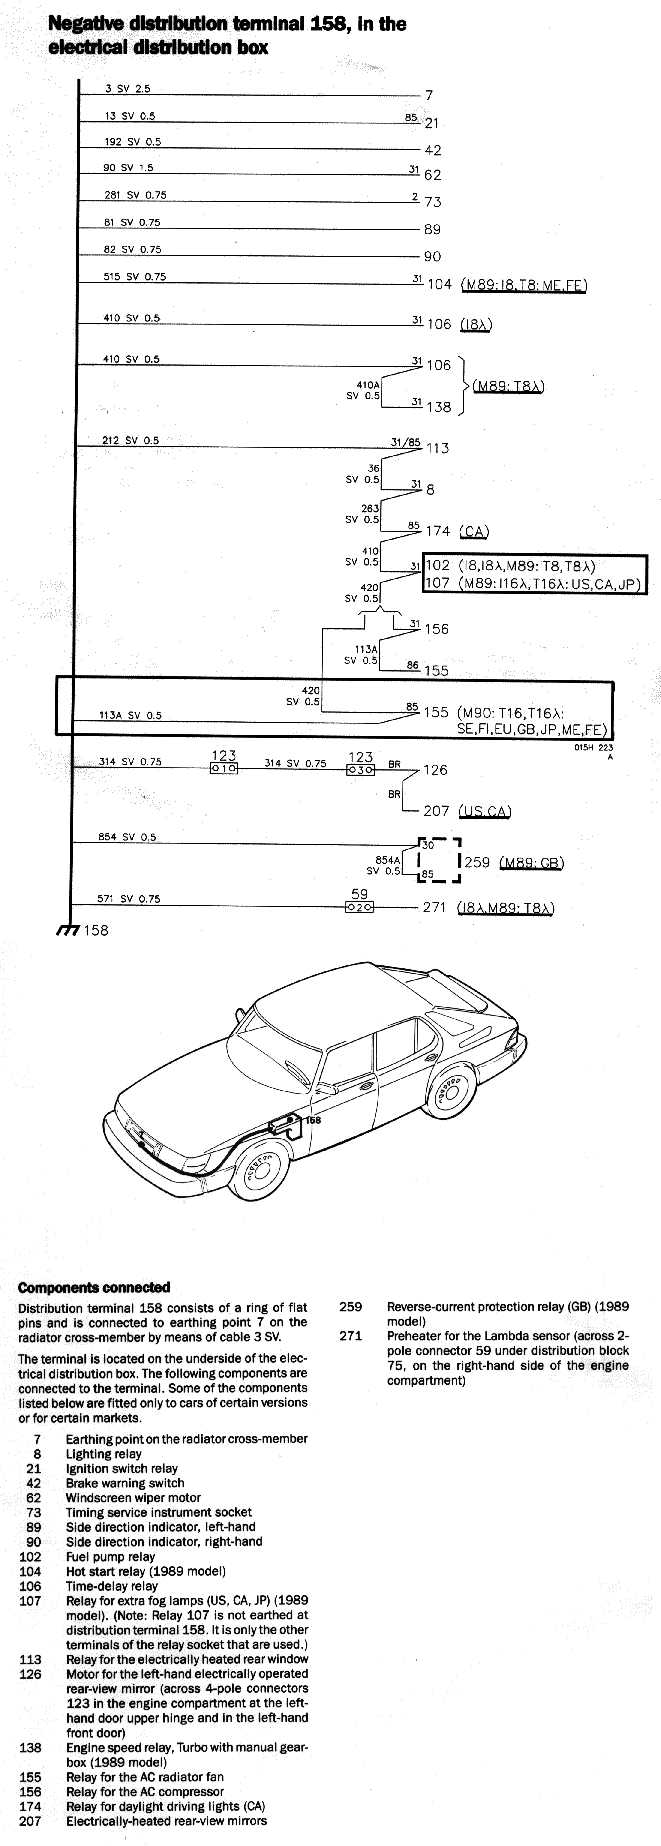 Electrical 900 89 90 Wiring Diagram For Ignition Vtween Amplifier And Earthing Point 300 Brake Unit 1989 Model 36 117 Between The Switch Handbrake Lever